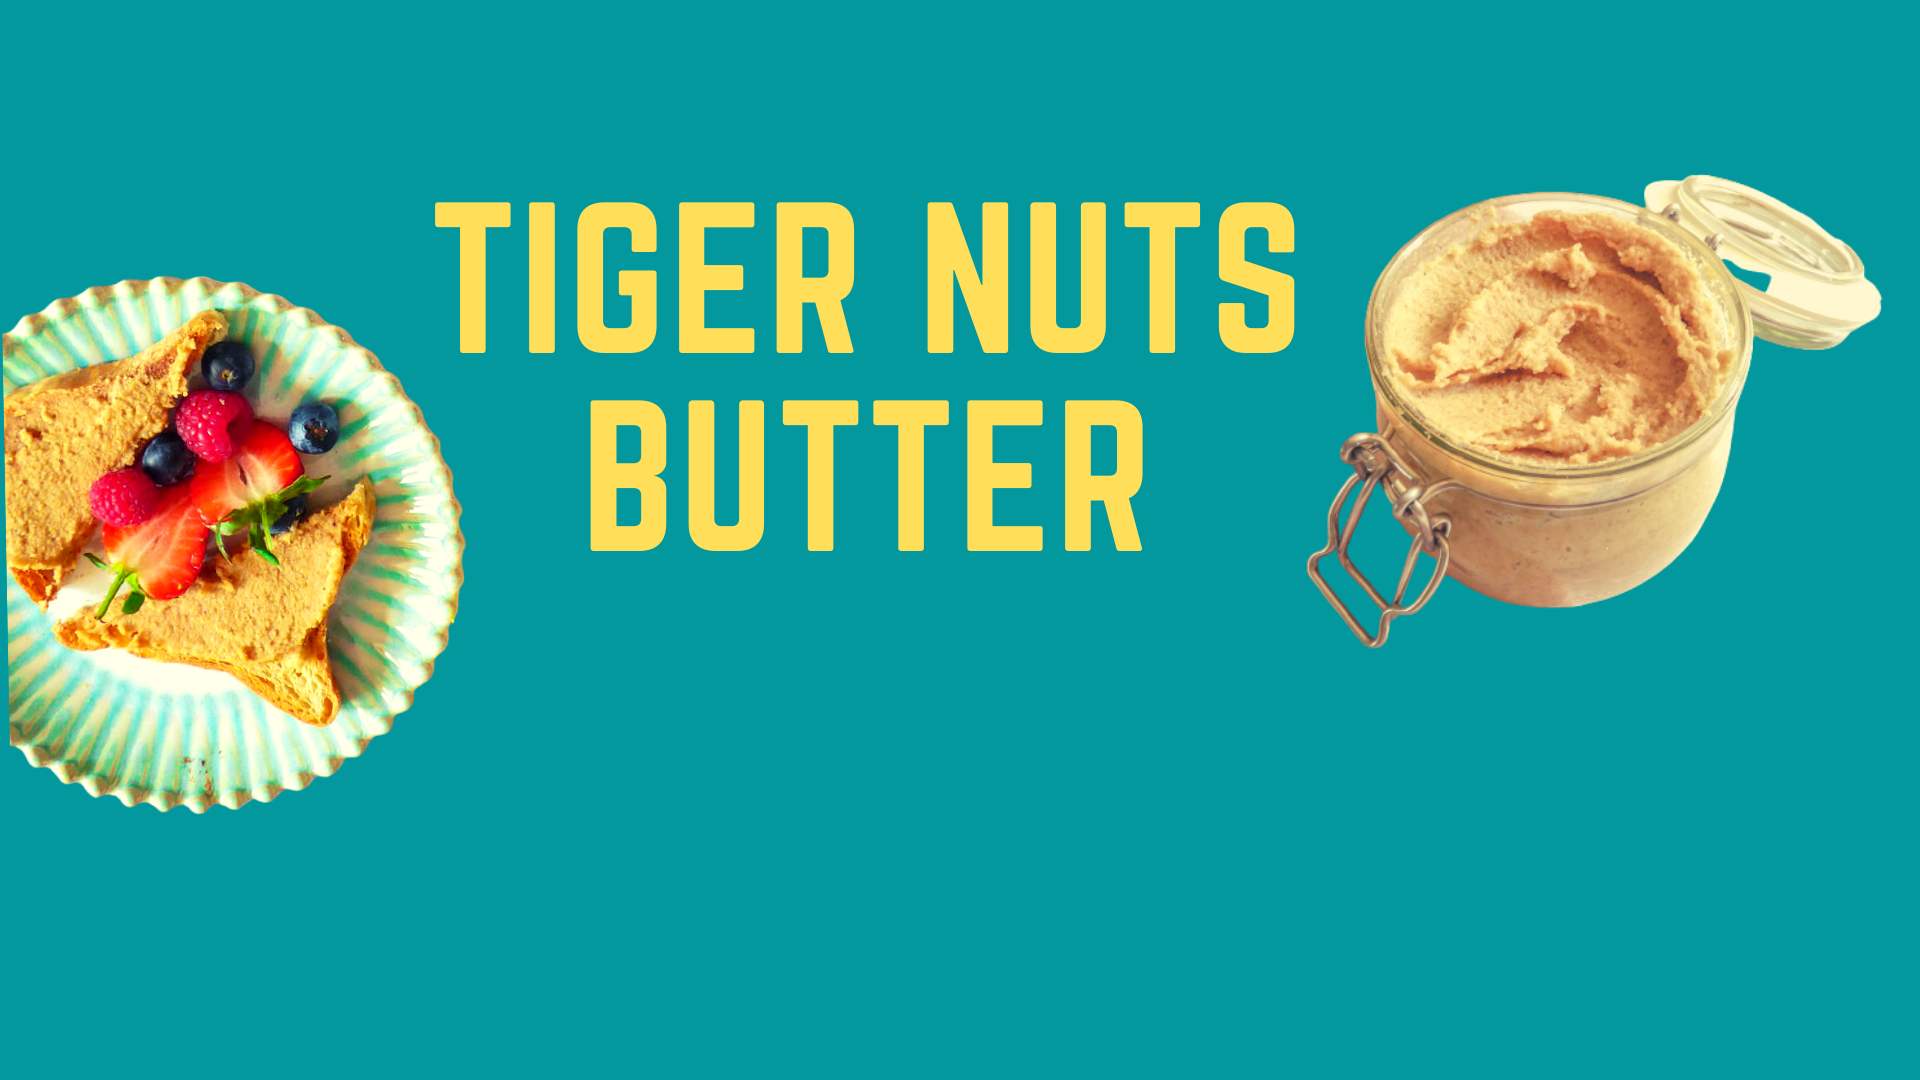 tiger nuts butter